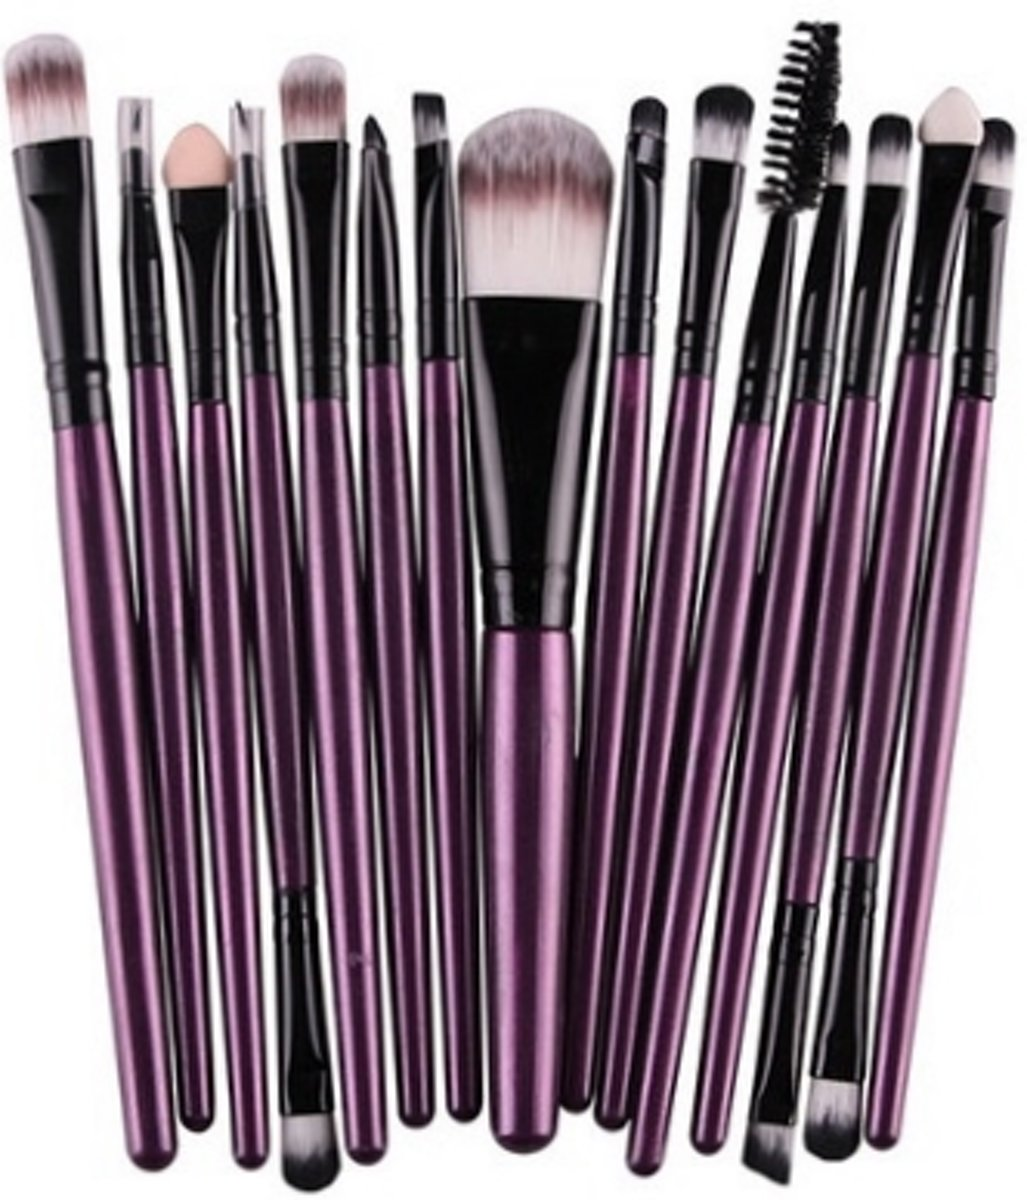 15-delige Make-up Kwasten/Brush Set | Paars | Fashion Favorite